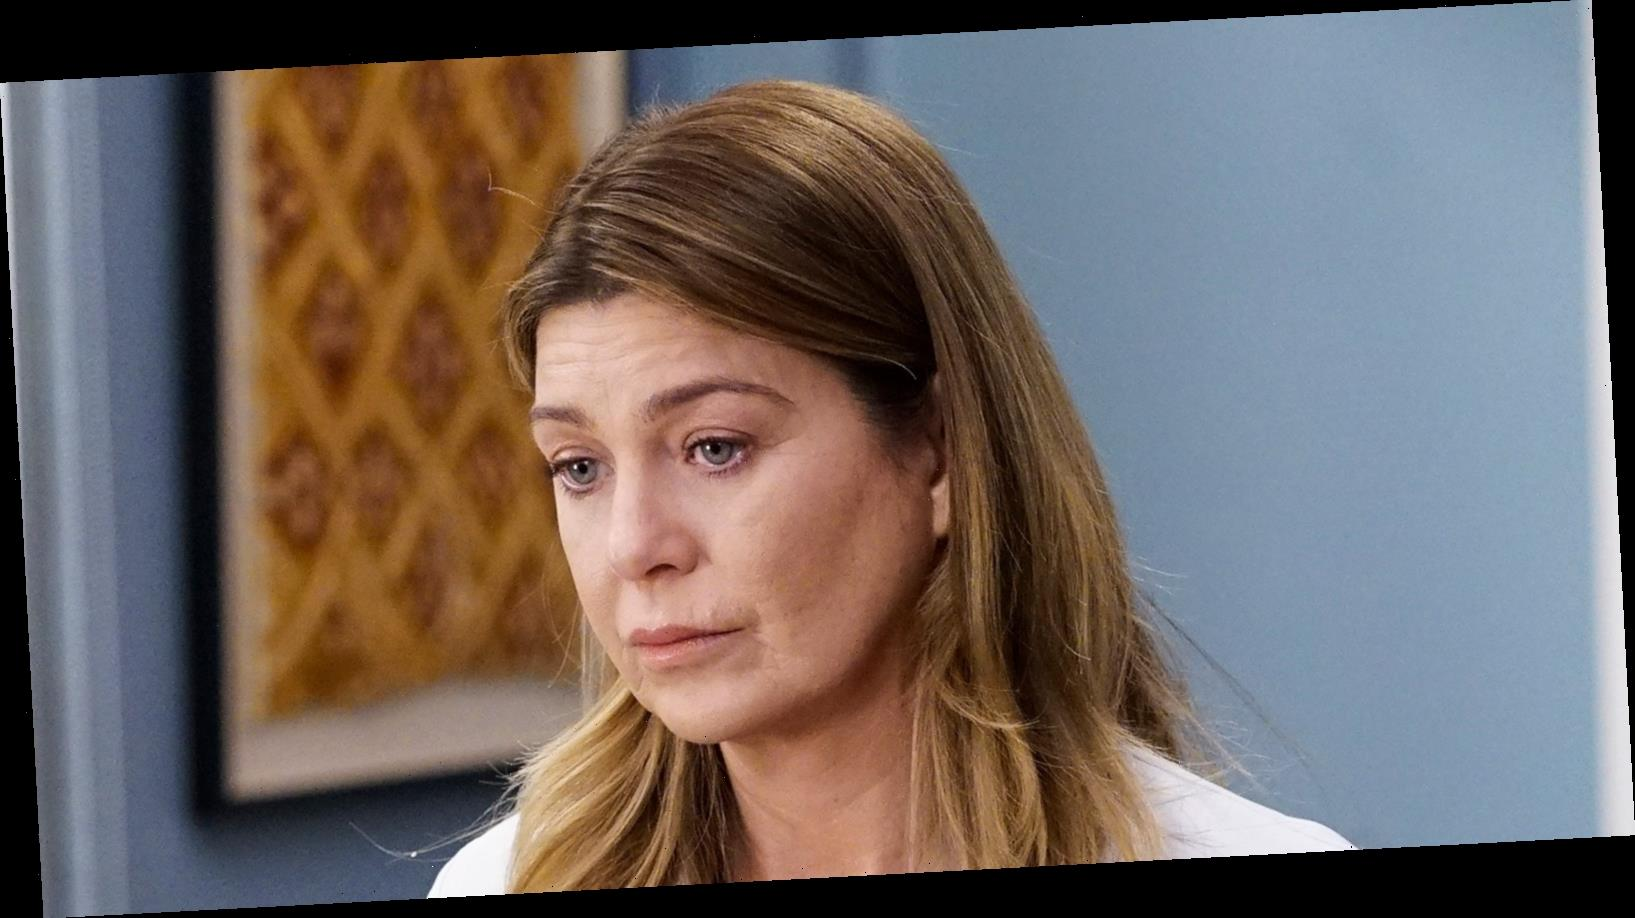 Ellen Pompeo: This 'Very Well Could Be' the Last Season of 'Grey's Anatomy'